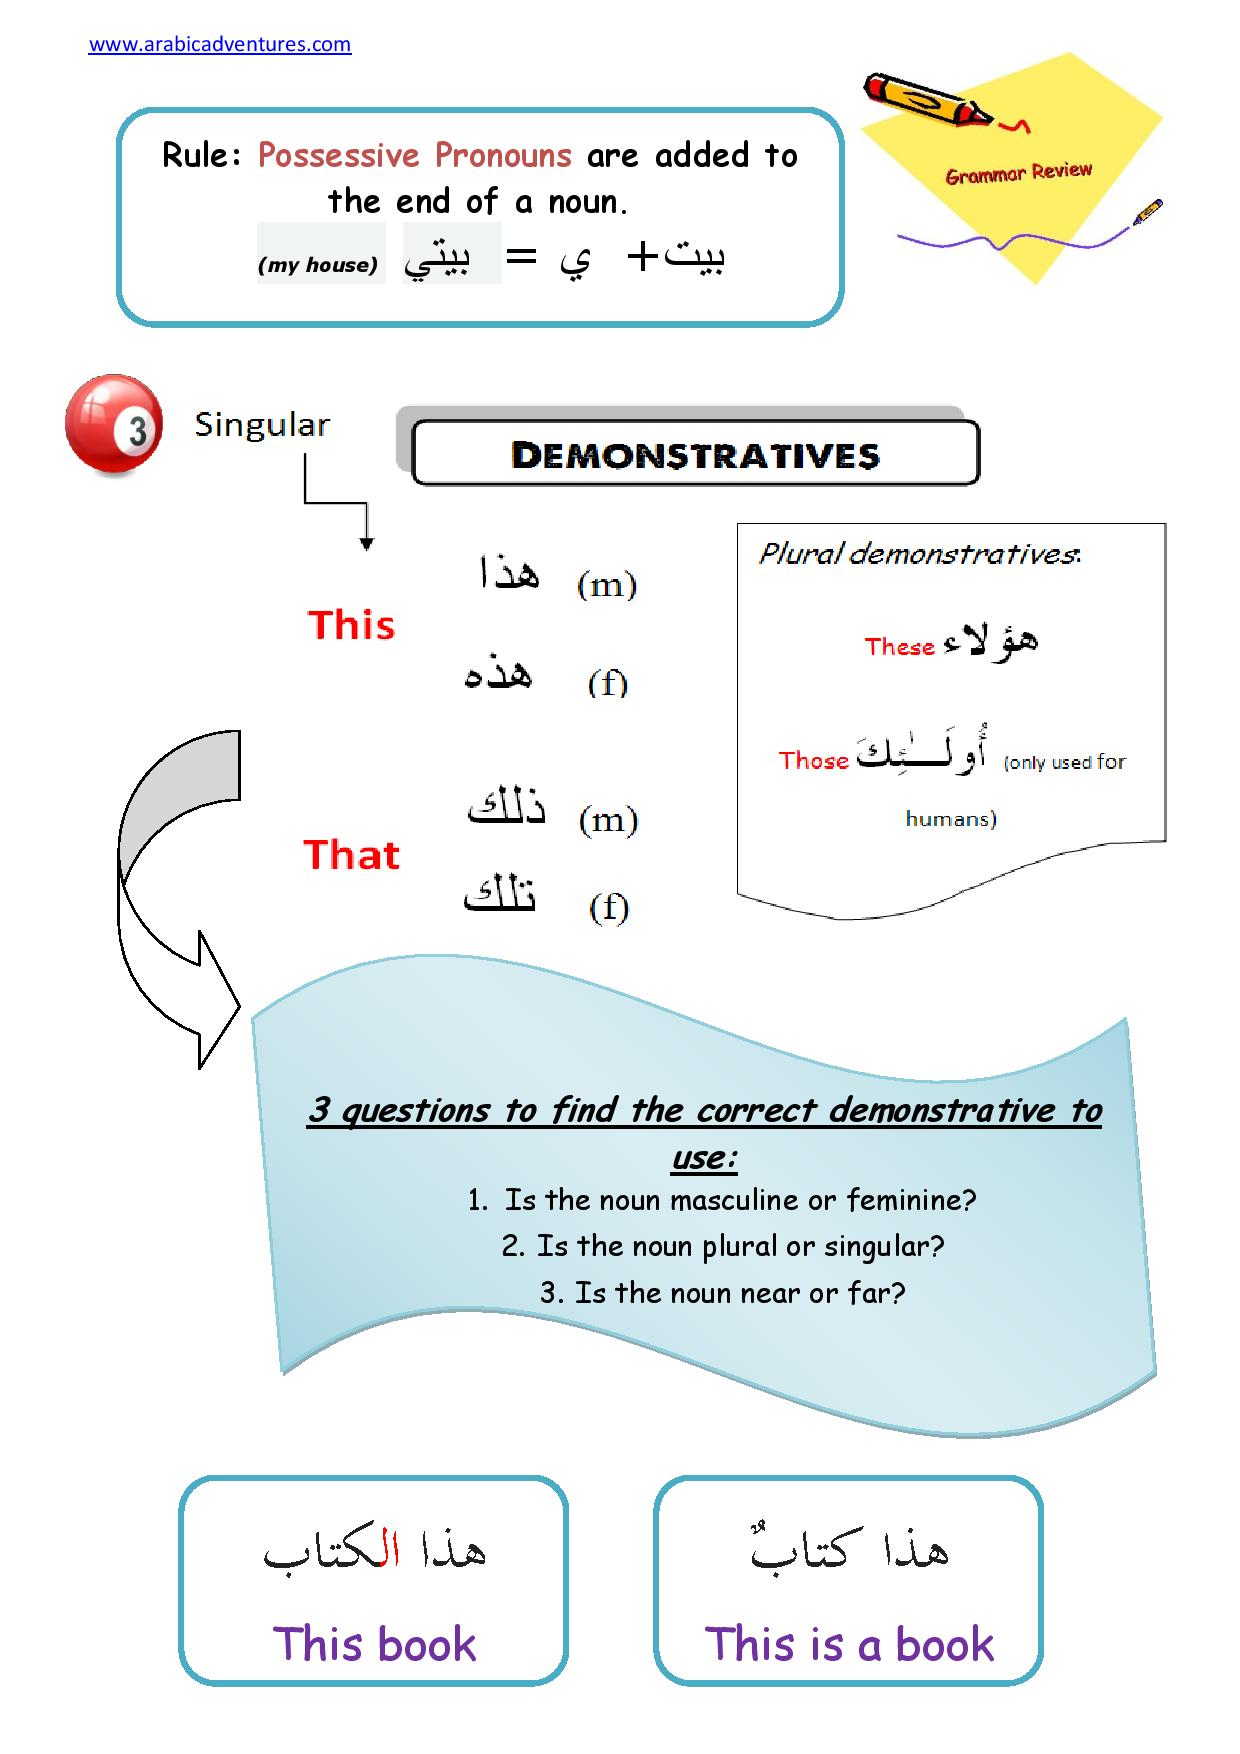 arabic grammar review Arabic Adventures – Grammar Review Worksheets